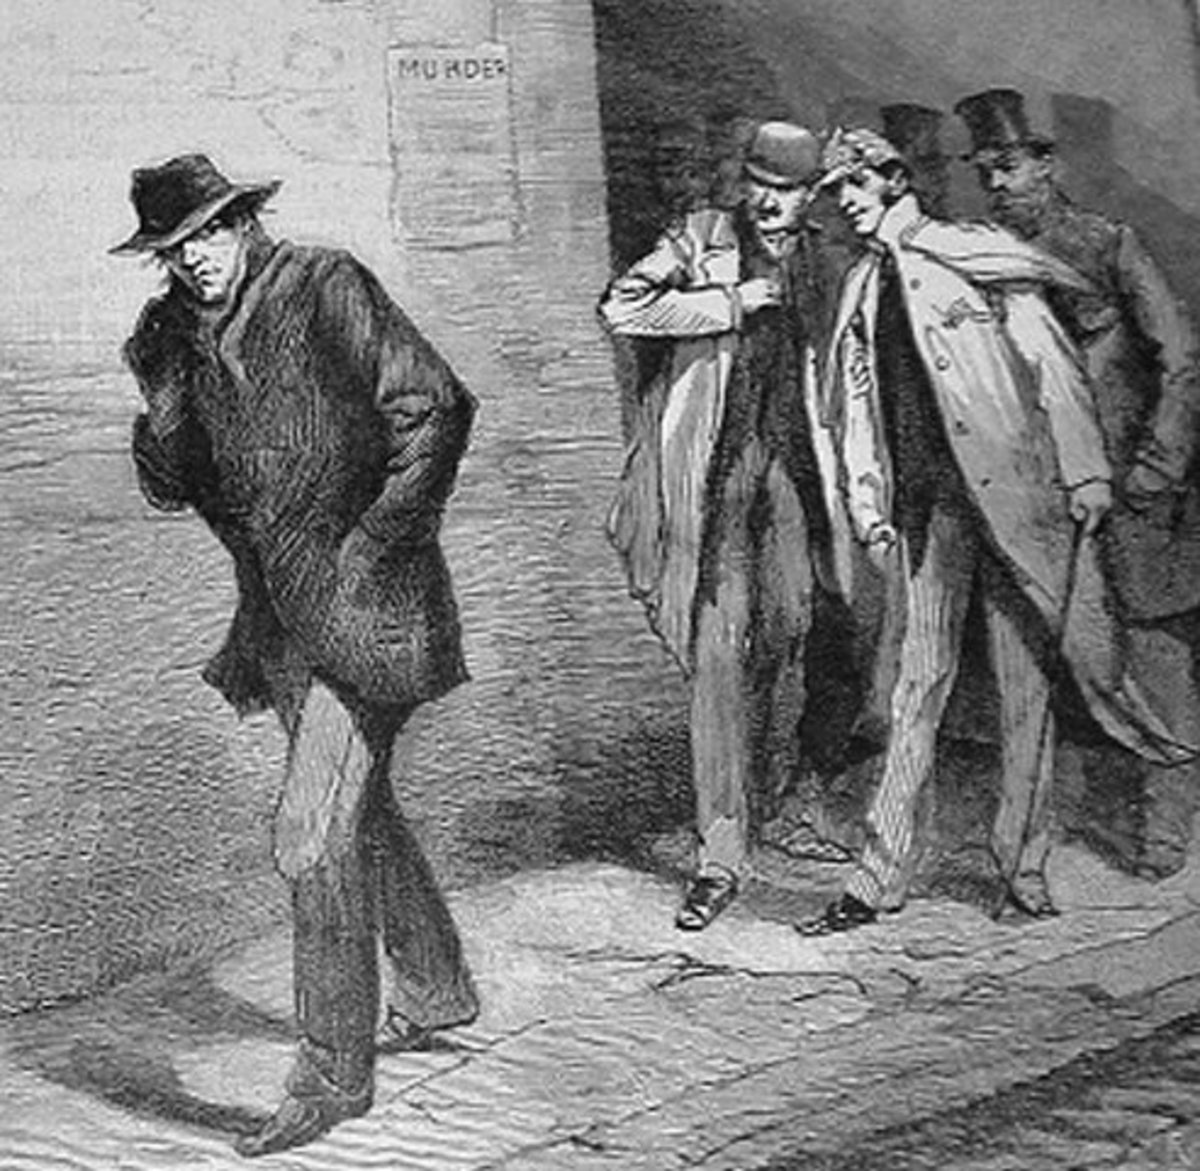 Man in dark clothing is an obvious Jack-the-Ripper suspect. Two men in background resemble Sherlock Holmes and Watson. Several fictional novels included them together.